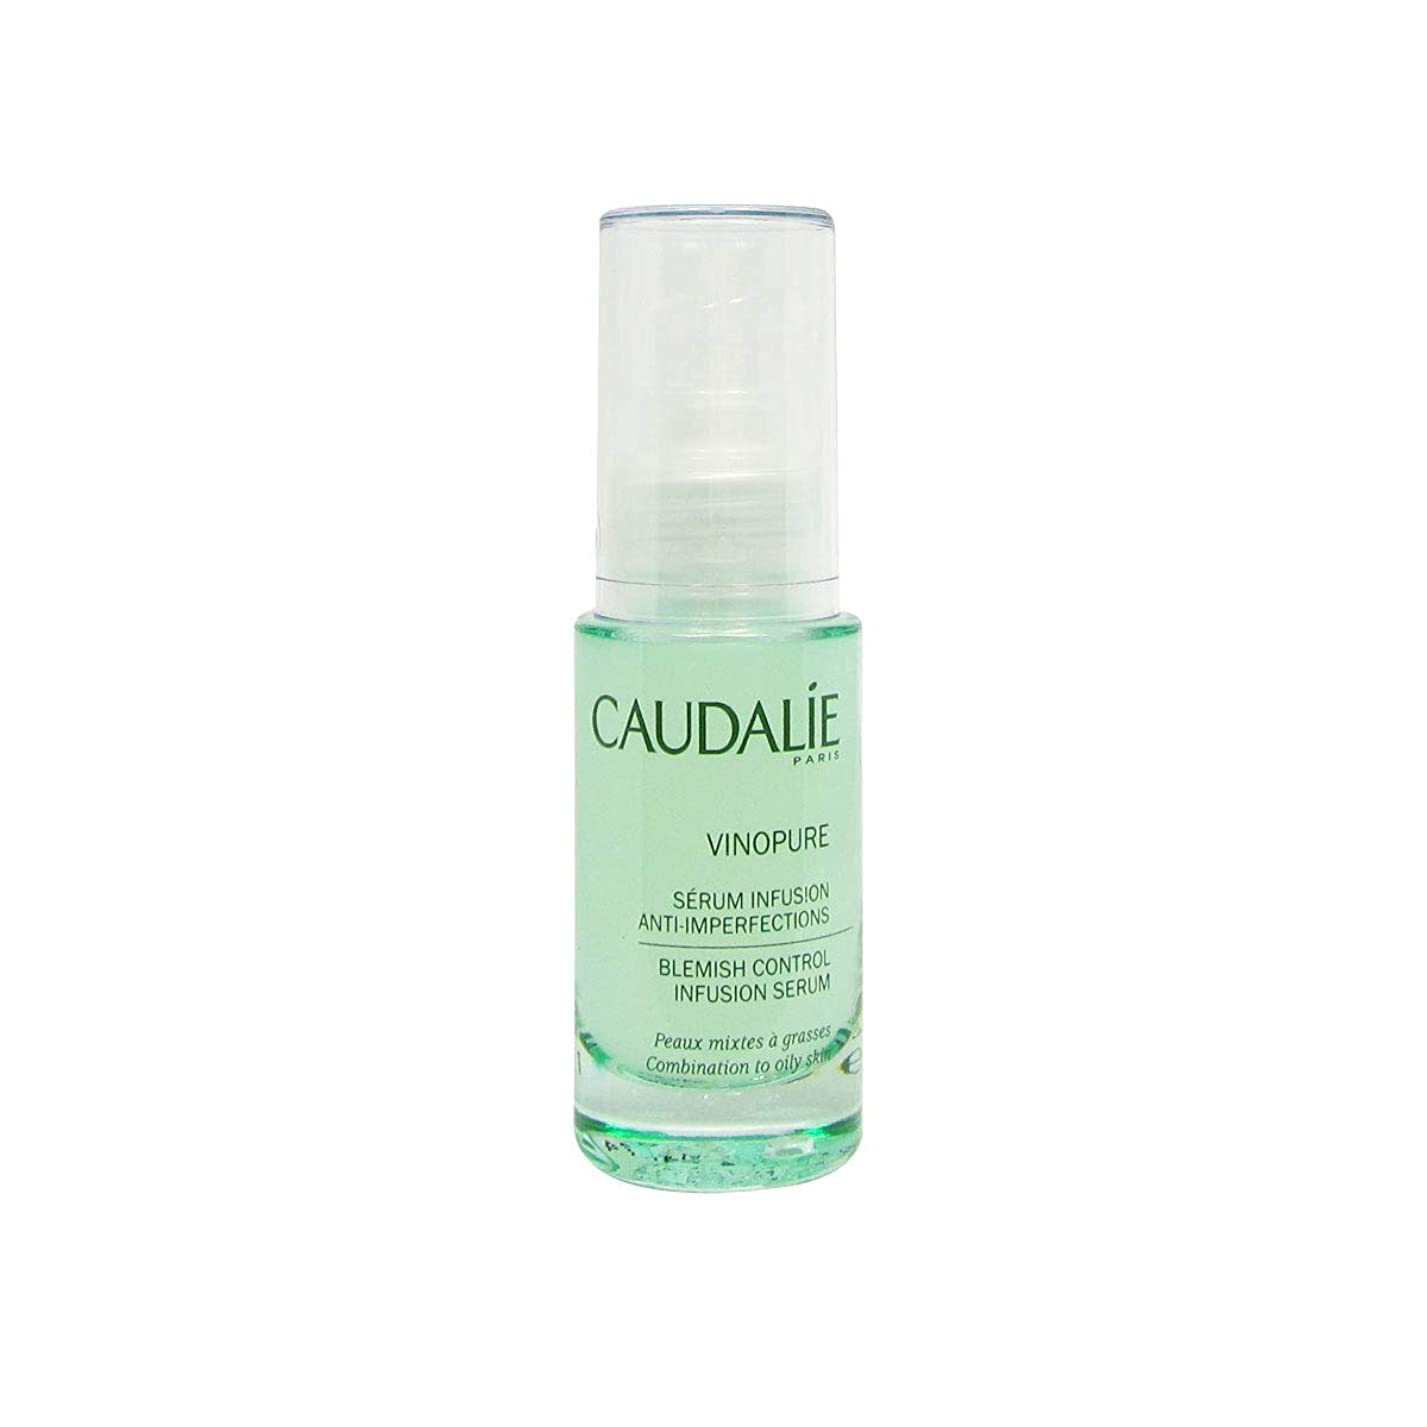 セレナ素敵な強いますCaudalie Vinopure Serum Infusion Anti-imperfections 30 Ml [並行輸入品]